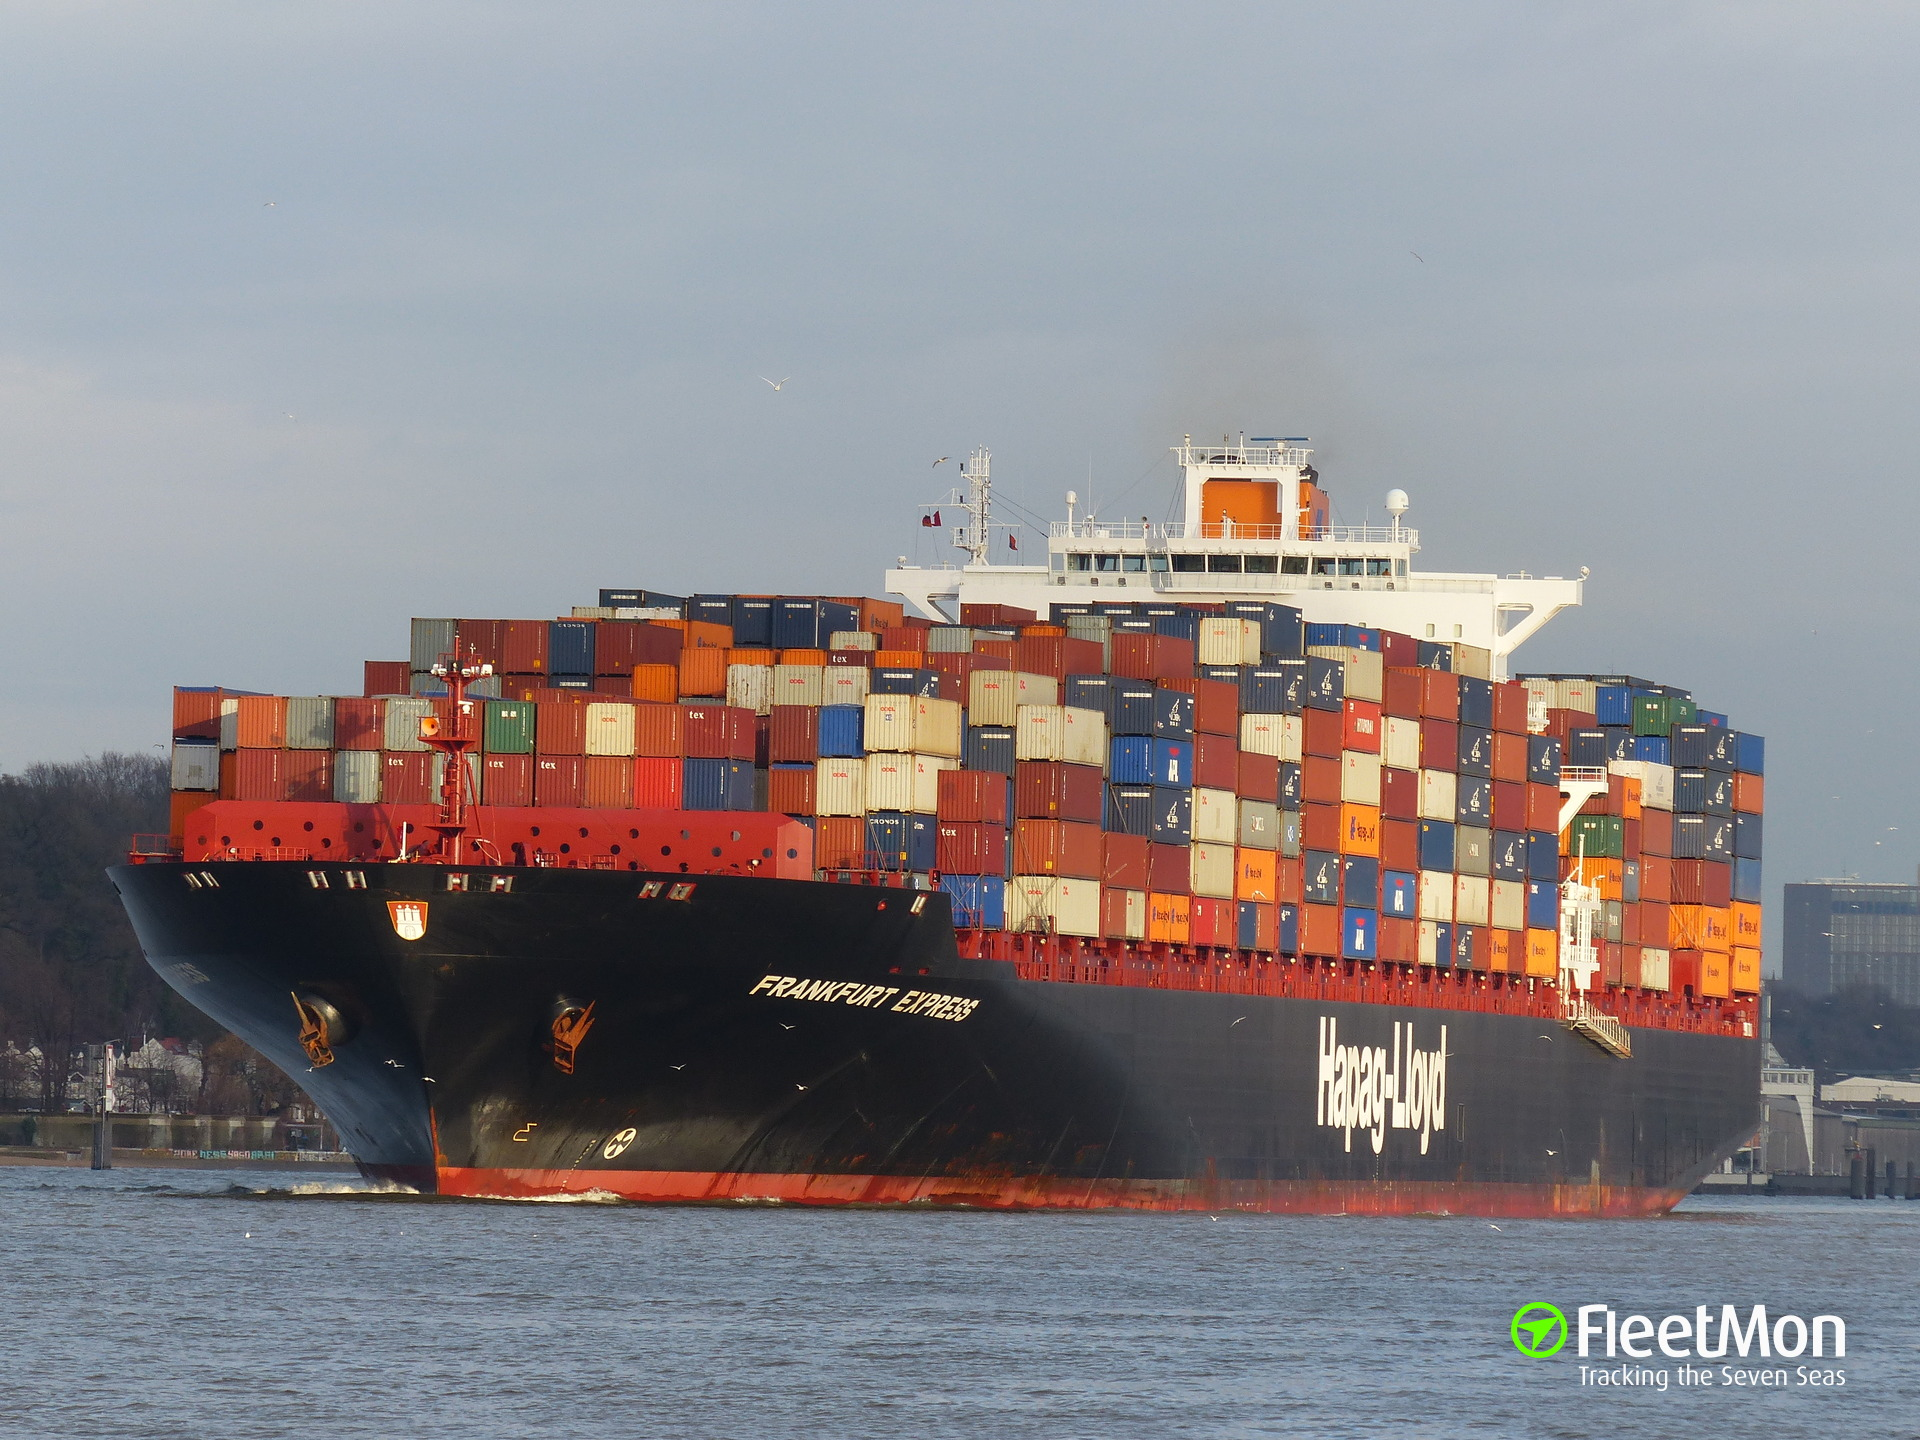 One more Hapag-Lloyd's container ship troubled in harbor, this time in Egypt